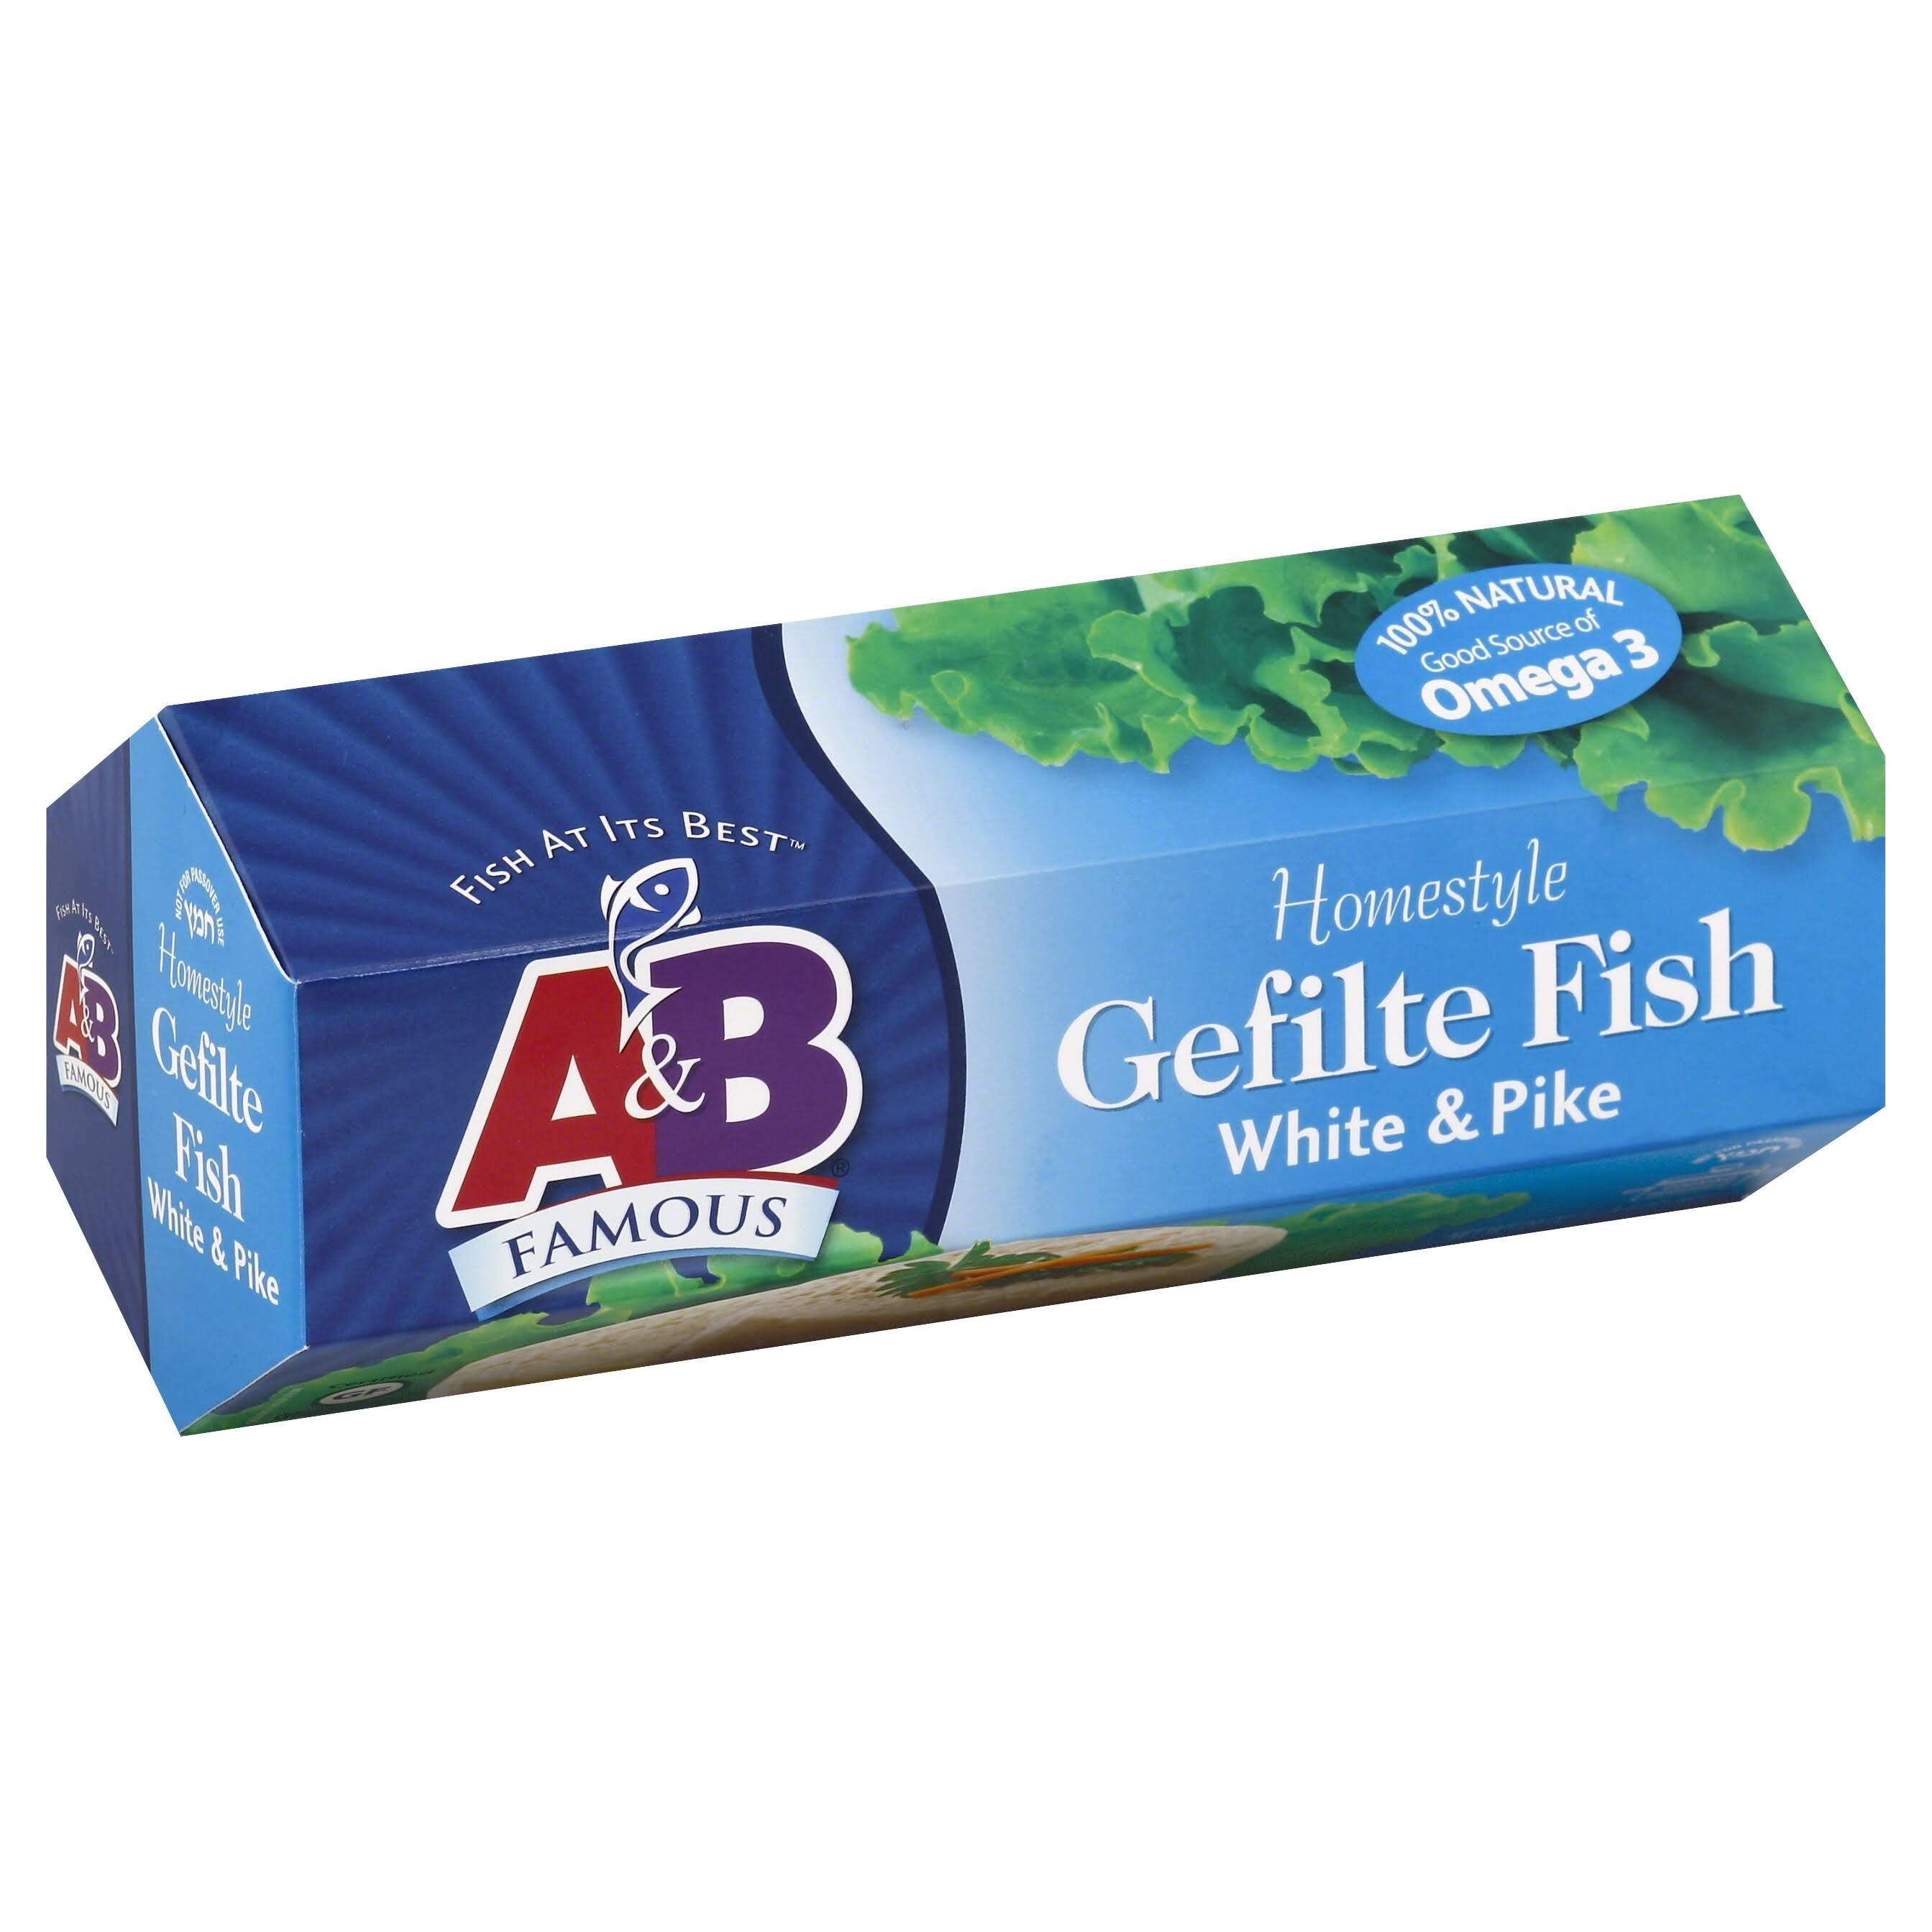 A & B Famous Gefilte Fish, Homestyle, White & Pike - 20 oz